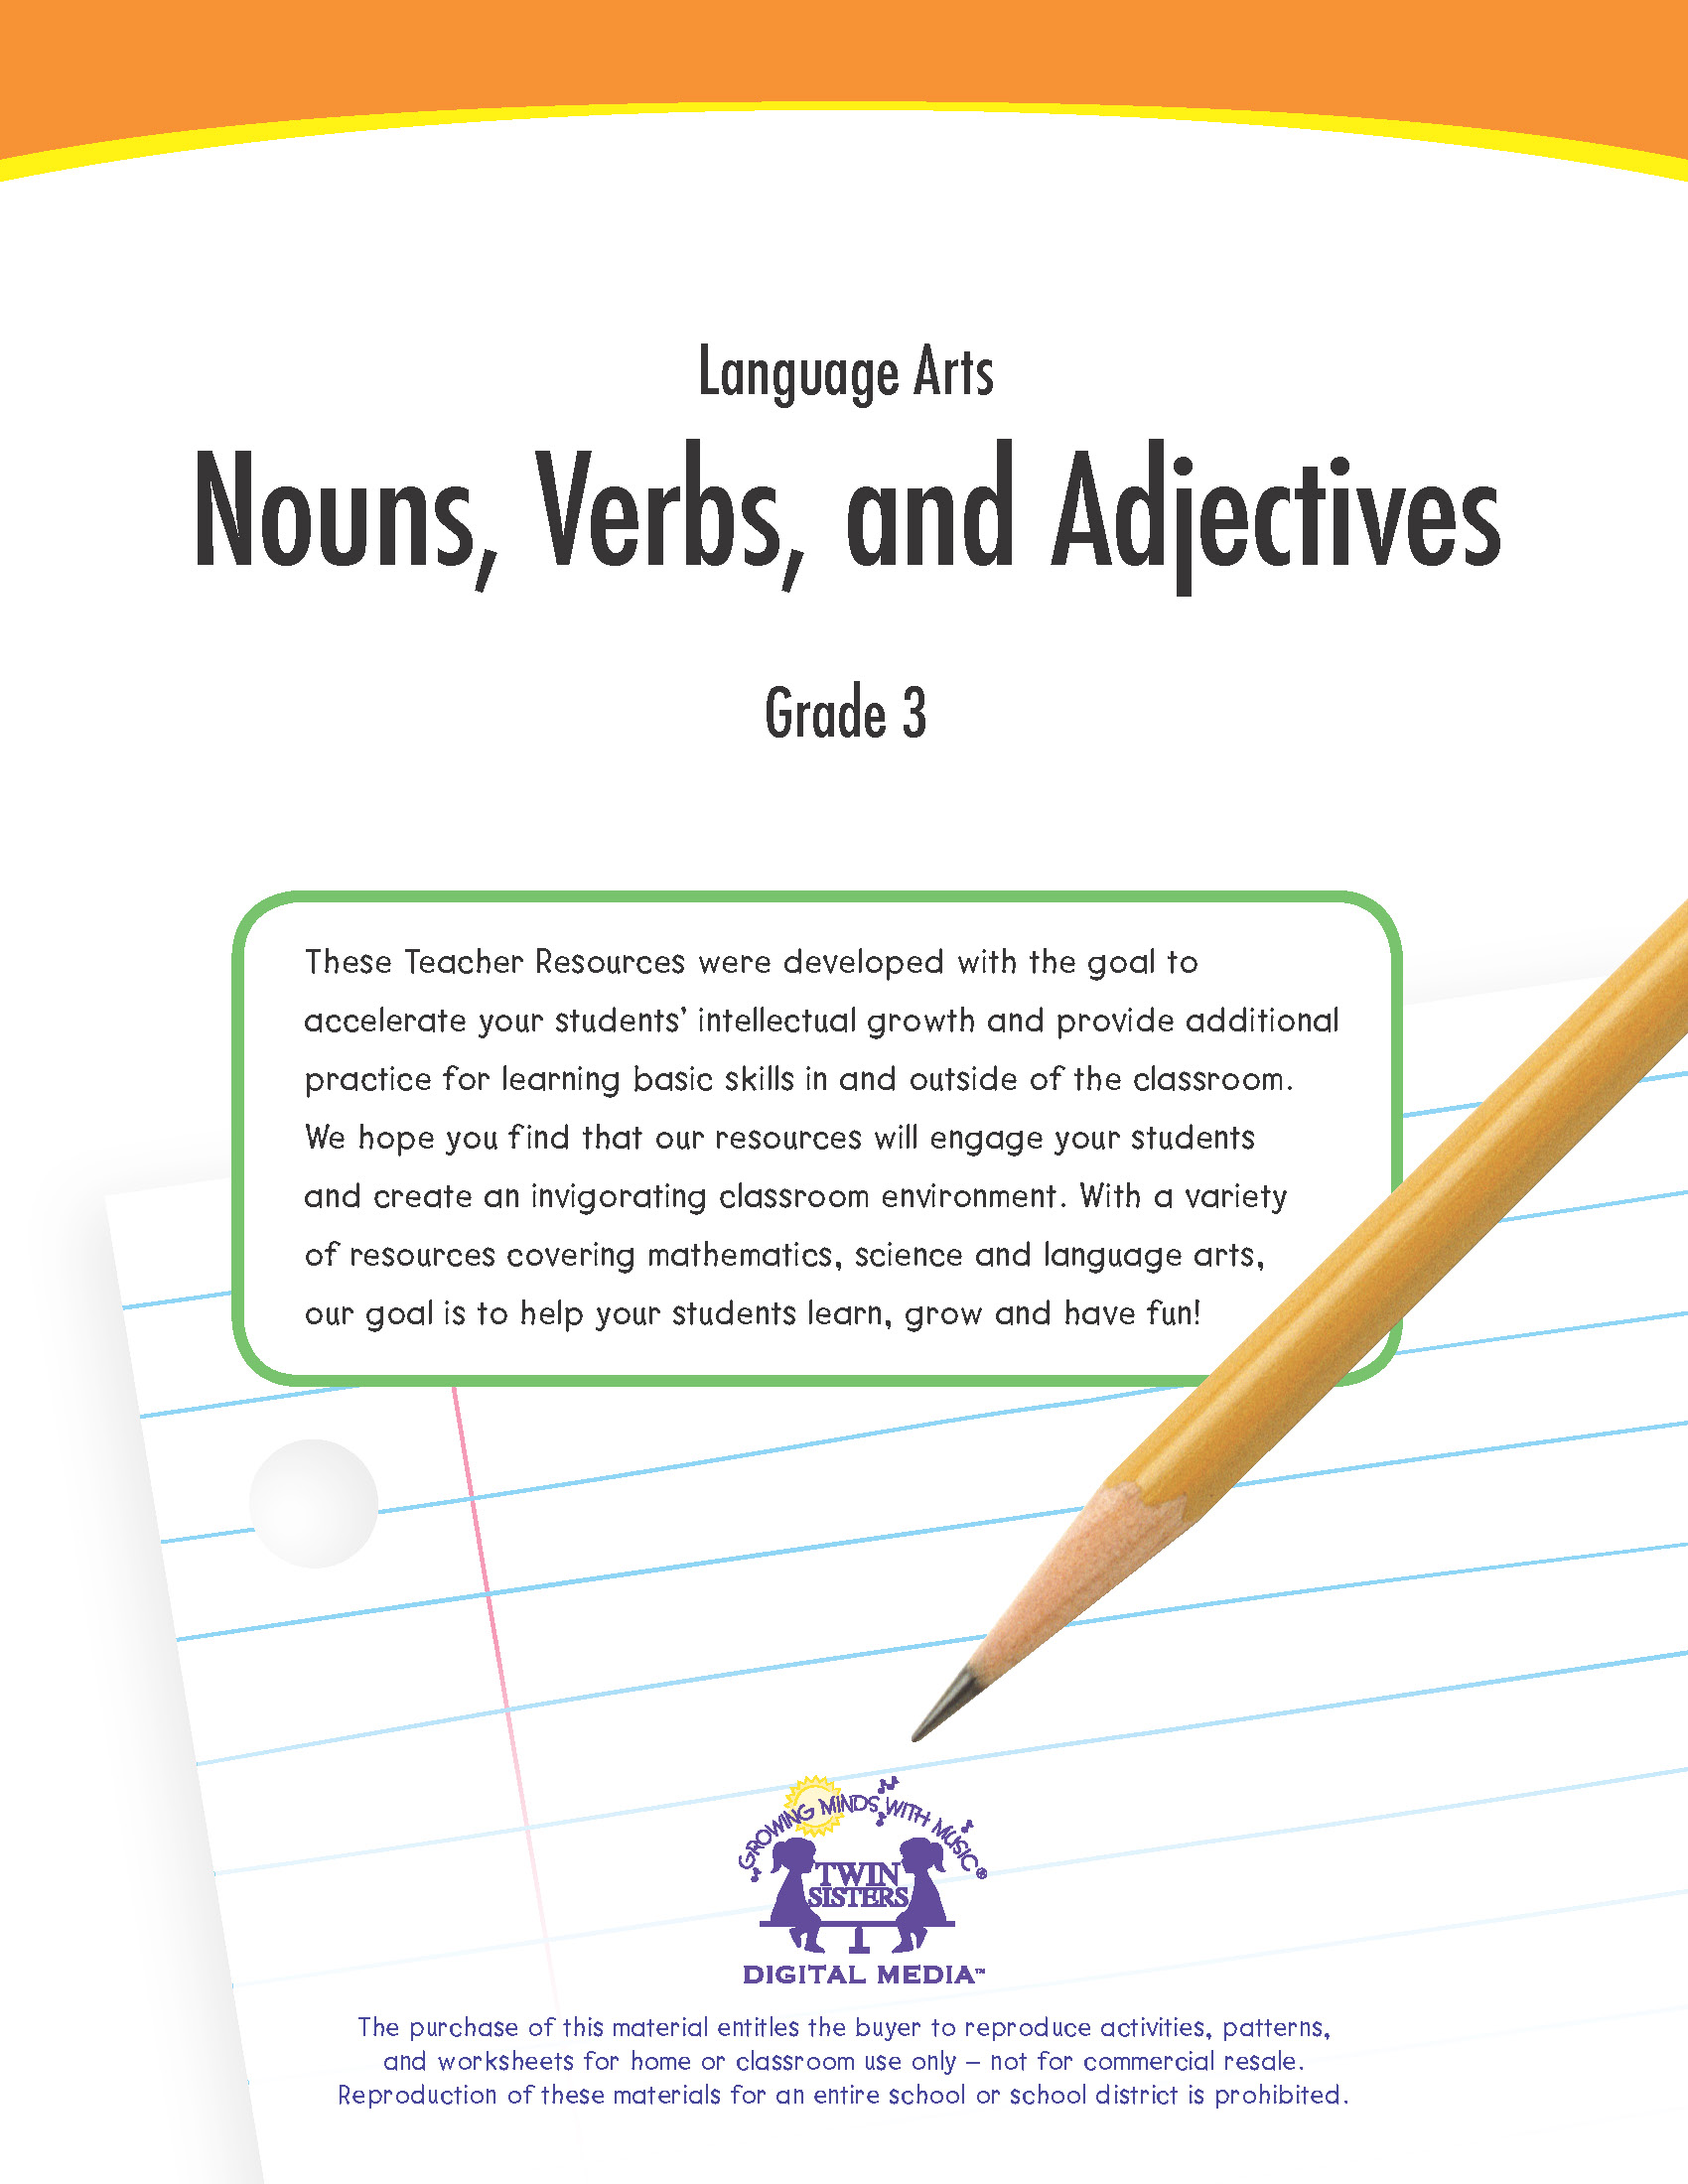 Language Arts Grade 3 Nouns Verbs And Adjectives